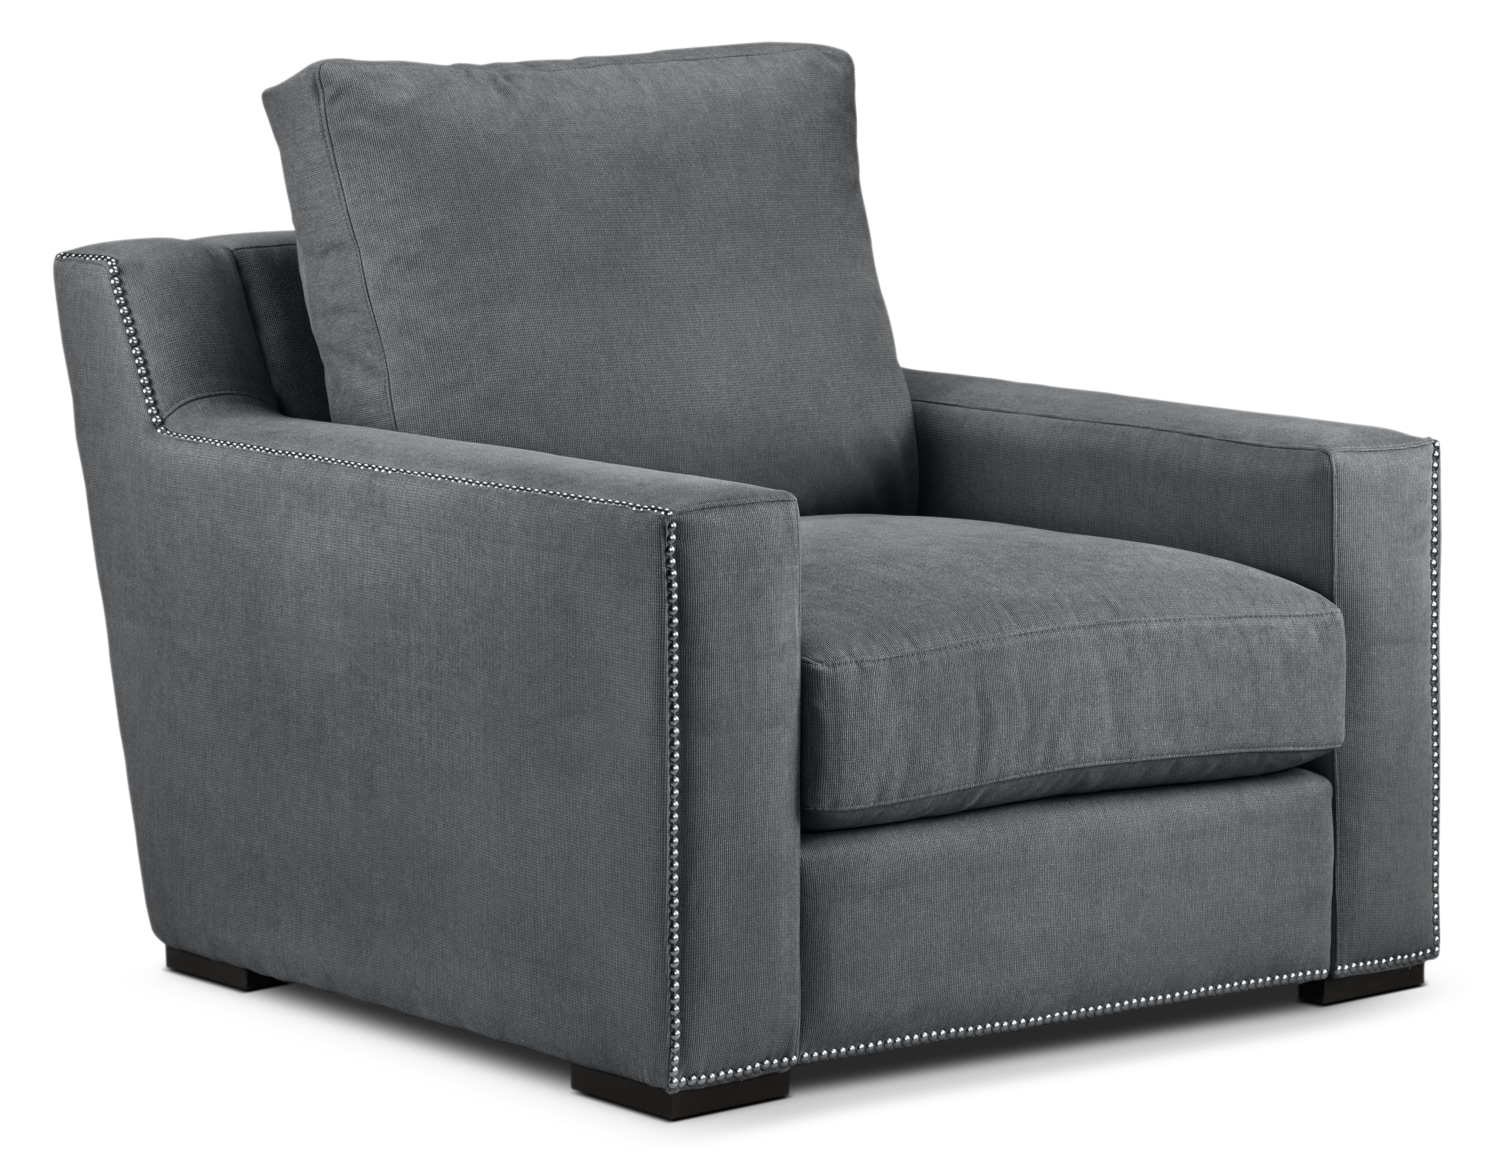 Ethan Chair - Charcoal